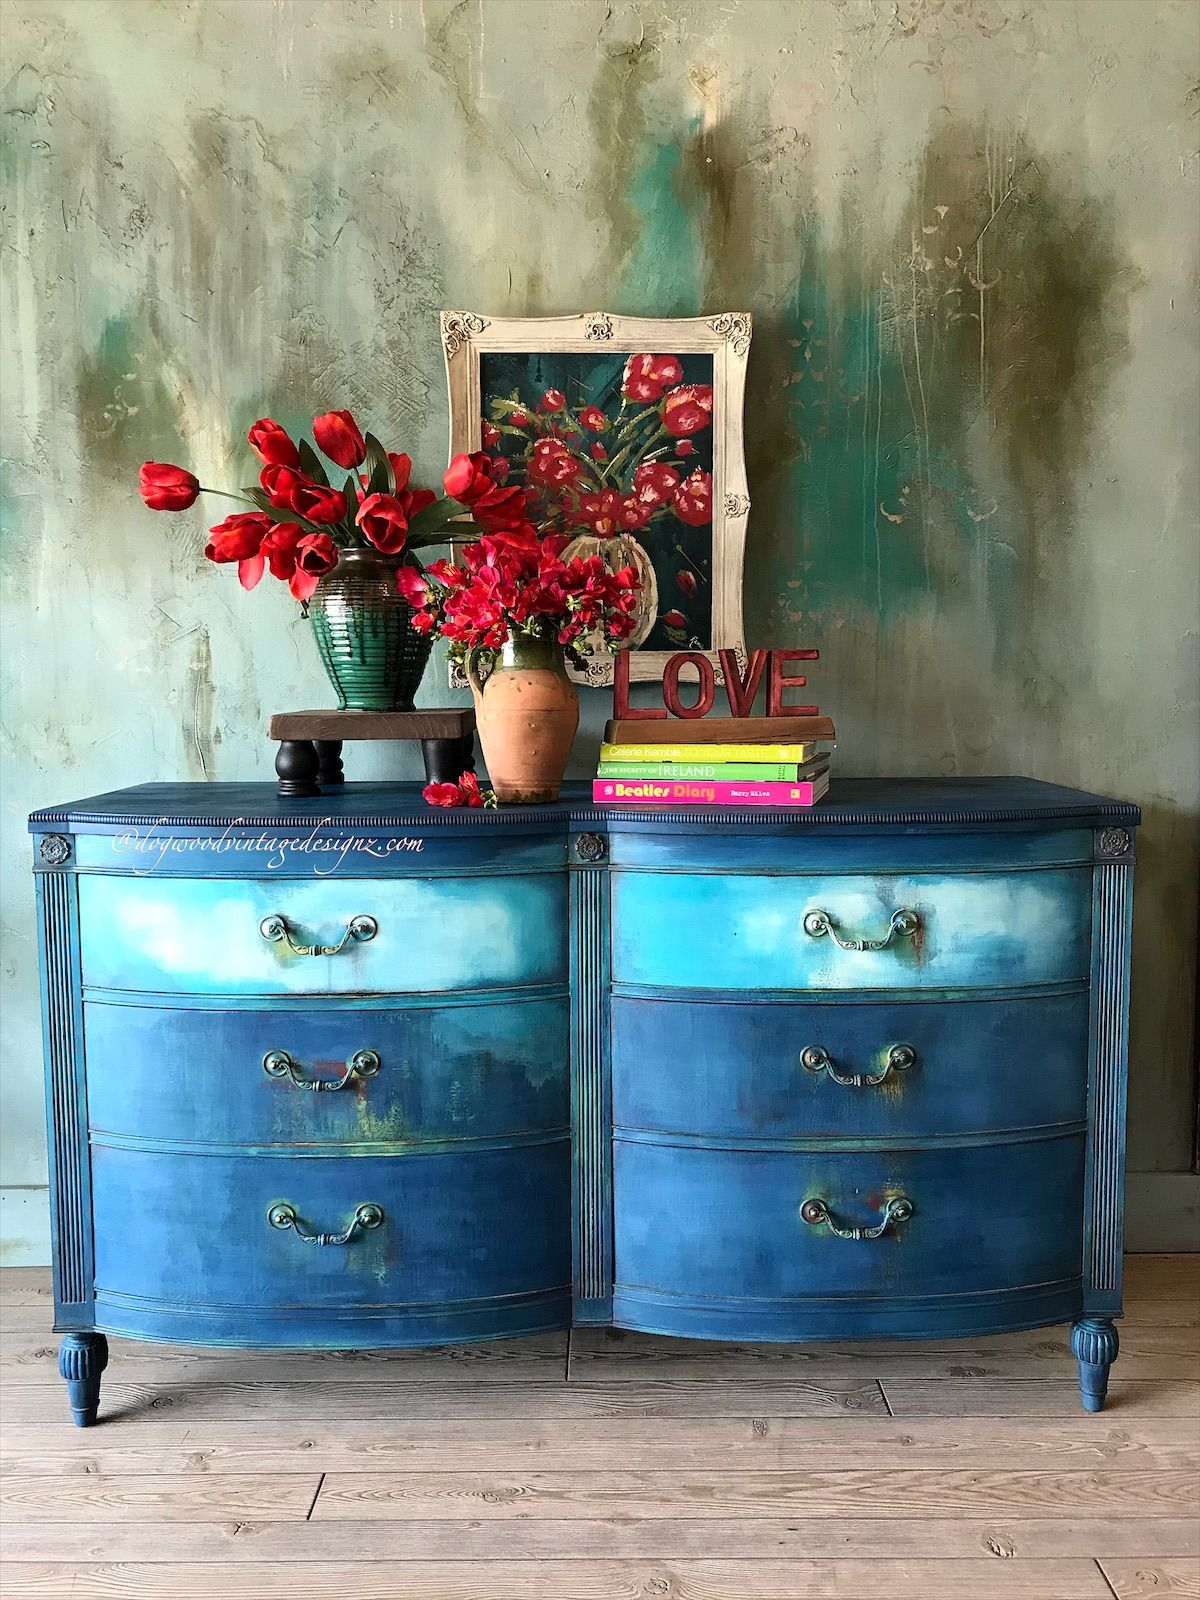 #paintedfurniture #furnitureartist #canvasart #anniesloanhome #upcycle #bohemian #layeredpaint #retro #handpainted #modernfarmhouse #grunge #furnitureflip #chateau #eclecticstyle #retro #vintagefurniture #etsyshop #patina #repurposedvintage #artist #cottagestyle #ilovetopaint #georgia #atlanta #artist #bohostyle #stagingforphotos